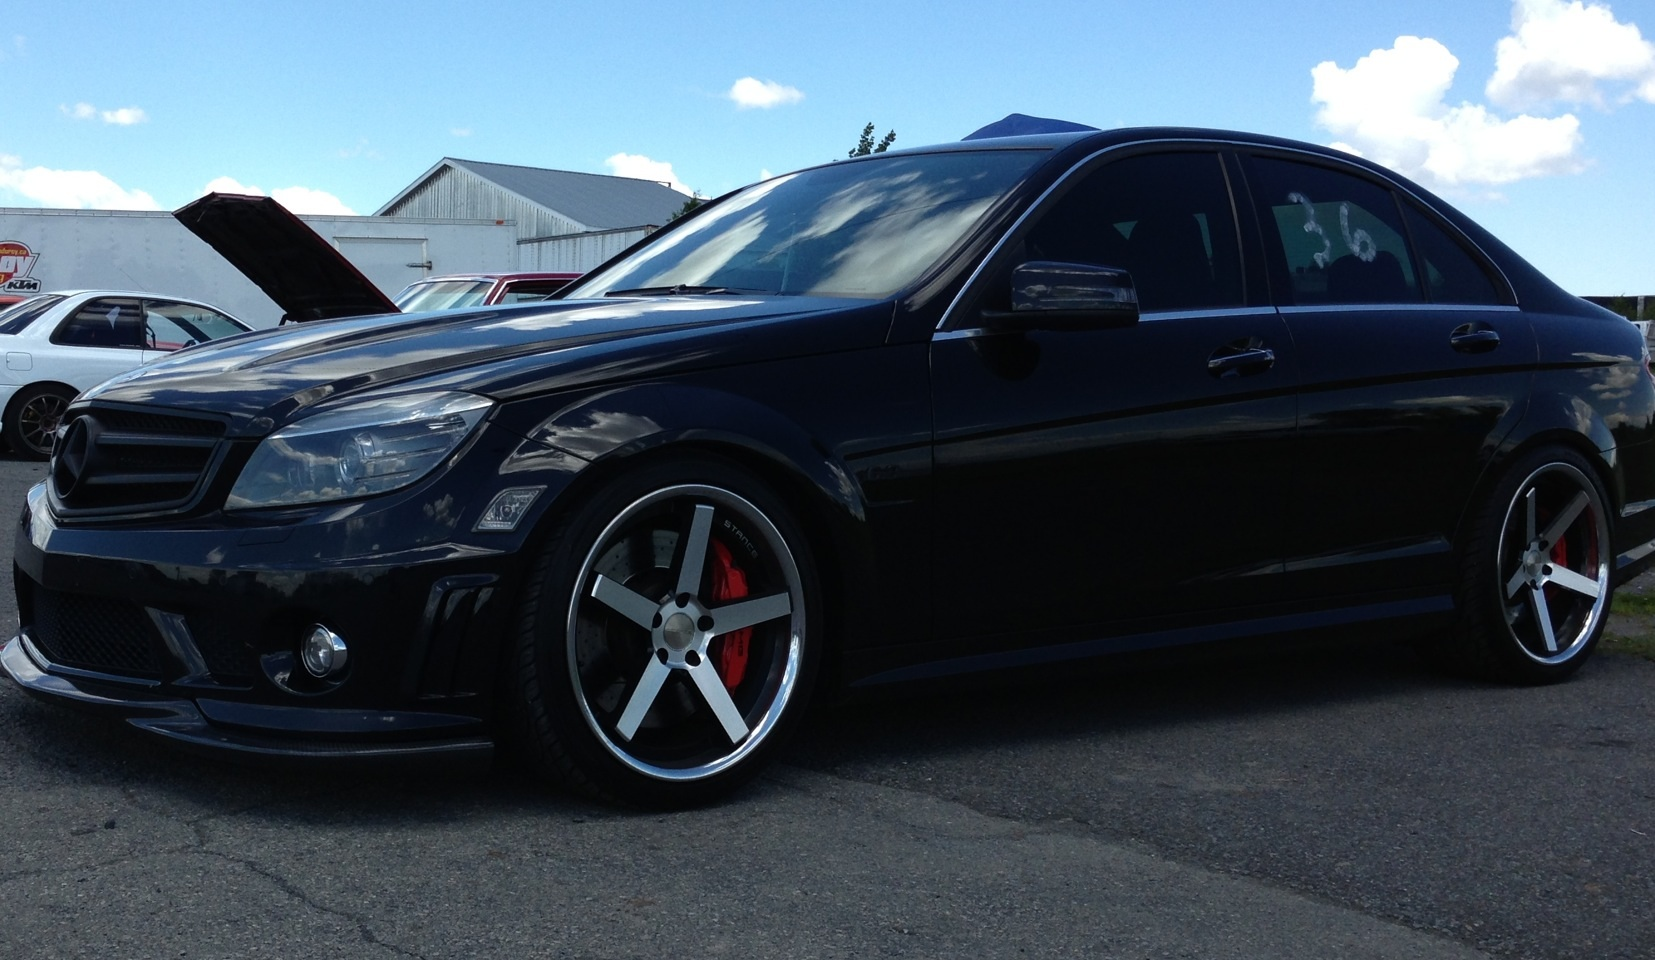 Stock 2010 mercedes benz c63 amg p31 1 4 mile drag racing for 2010 mercedes benz c63 amg